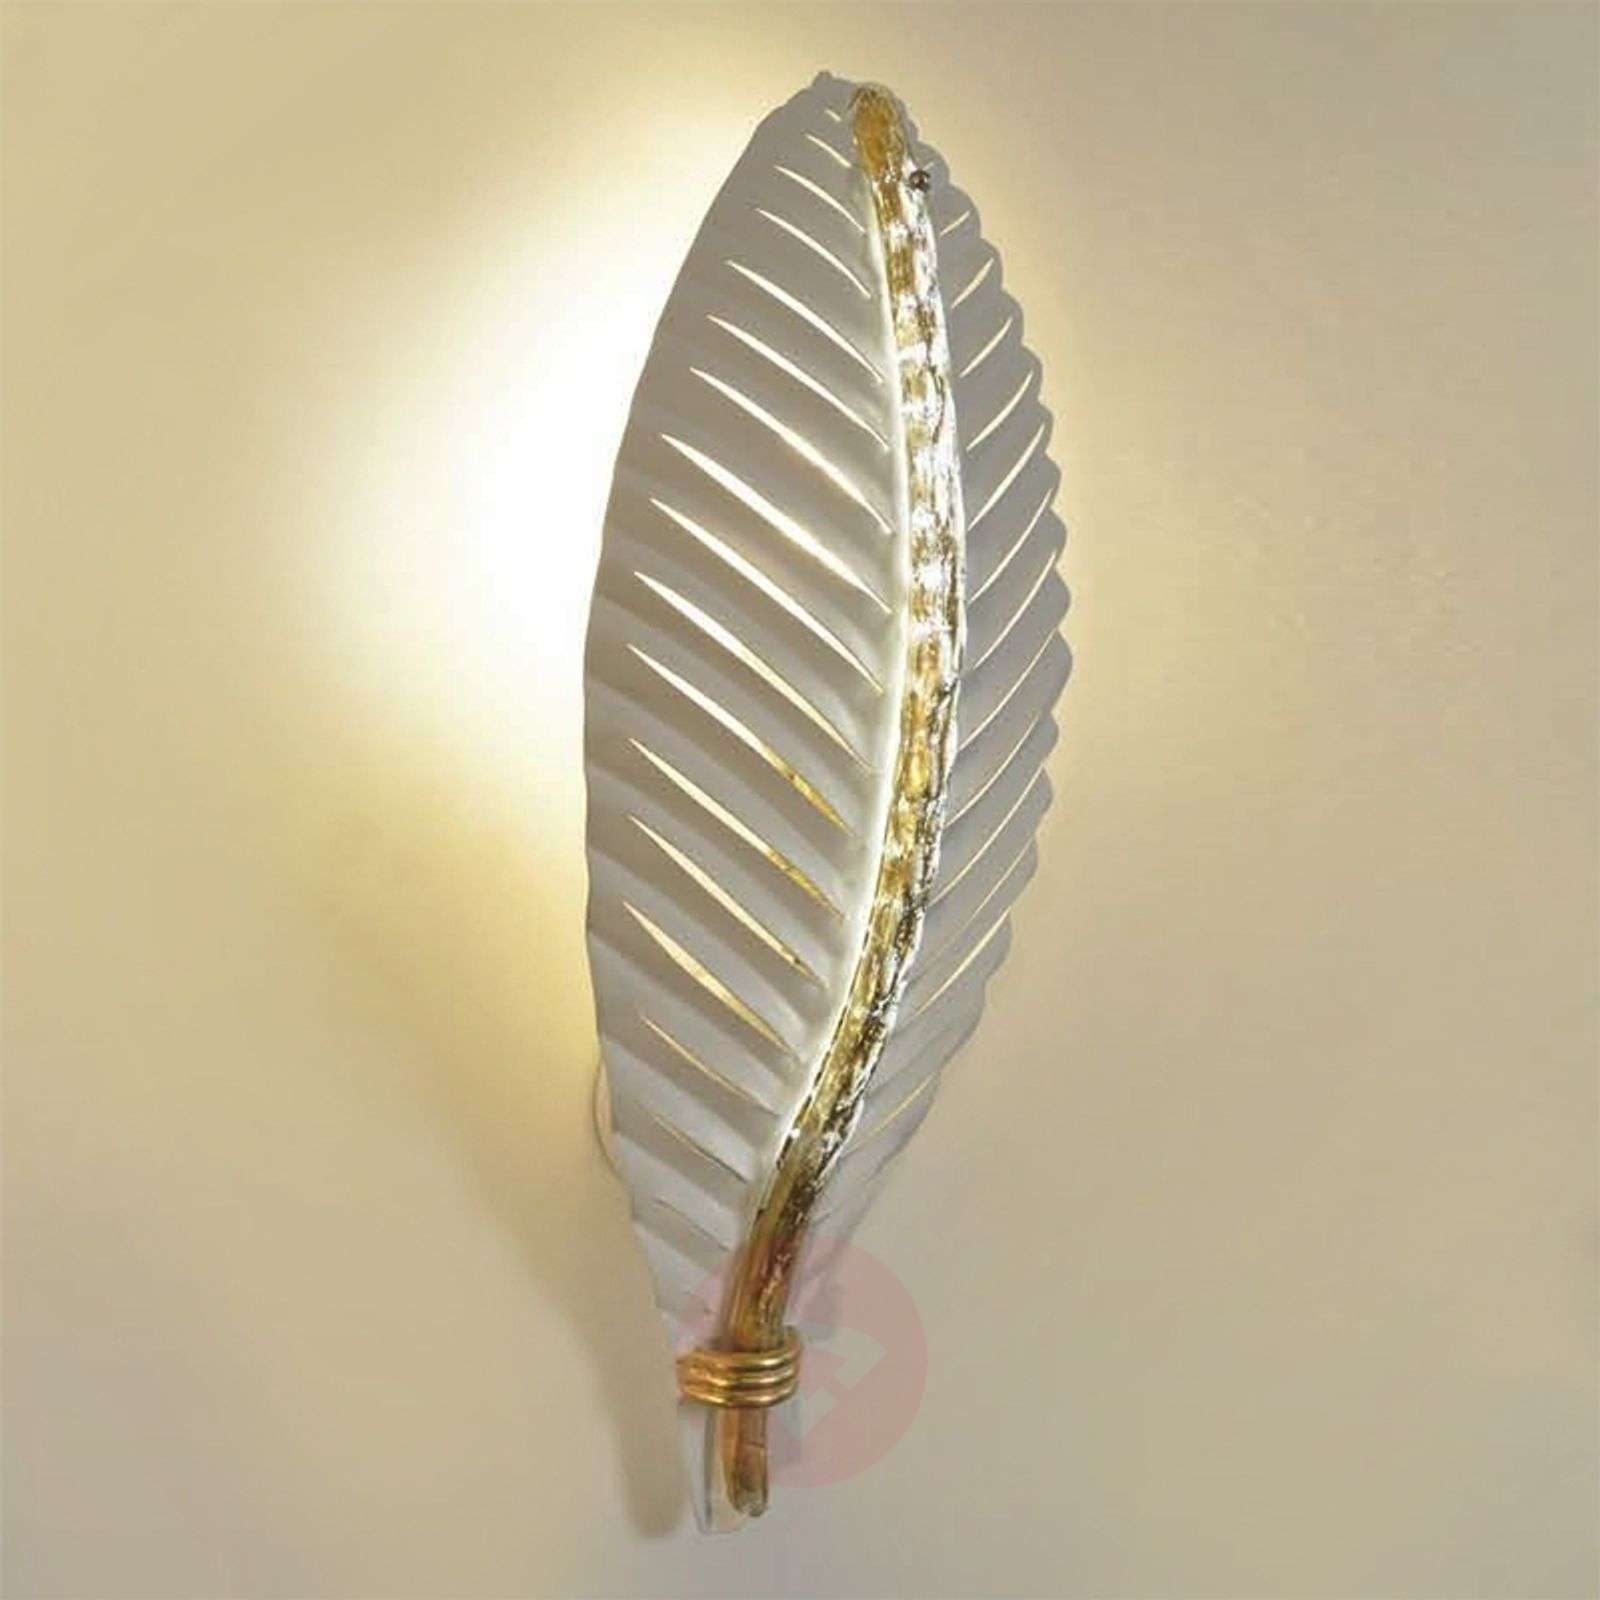 Metal Shaped Wall Lights : Leaf-shaped wall light Oasi Lights.co.uk